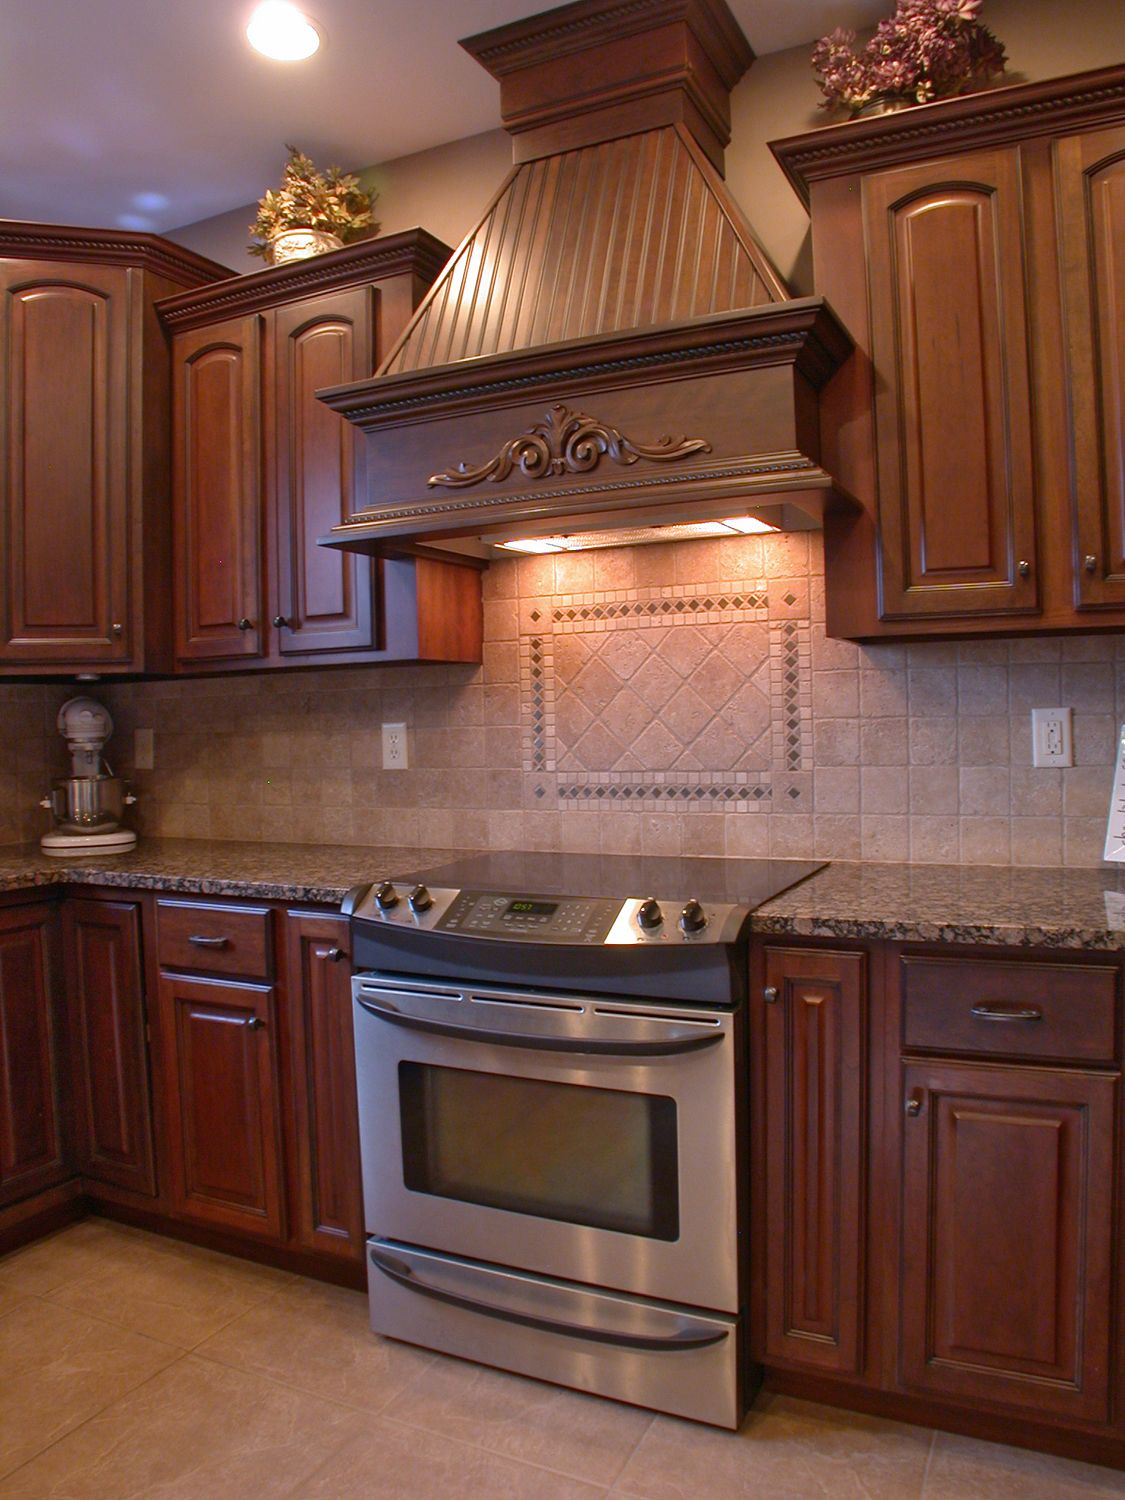 Custom Wood Range Hood To Match Cabinetry Kitchen